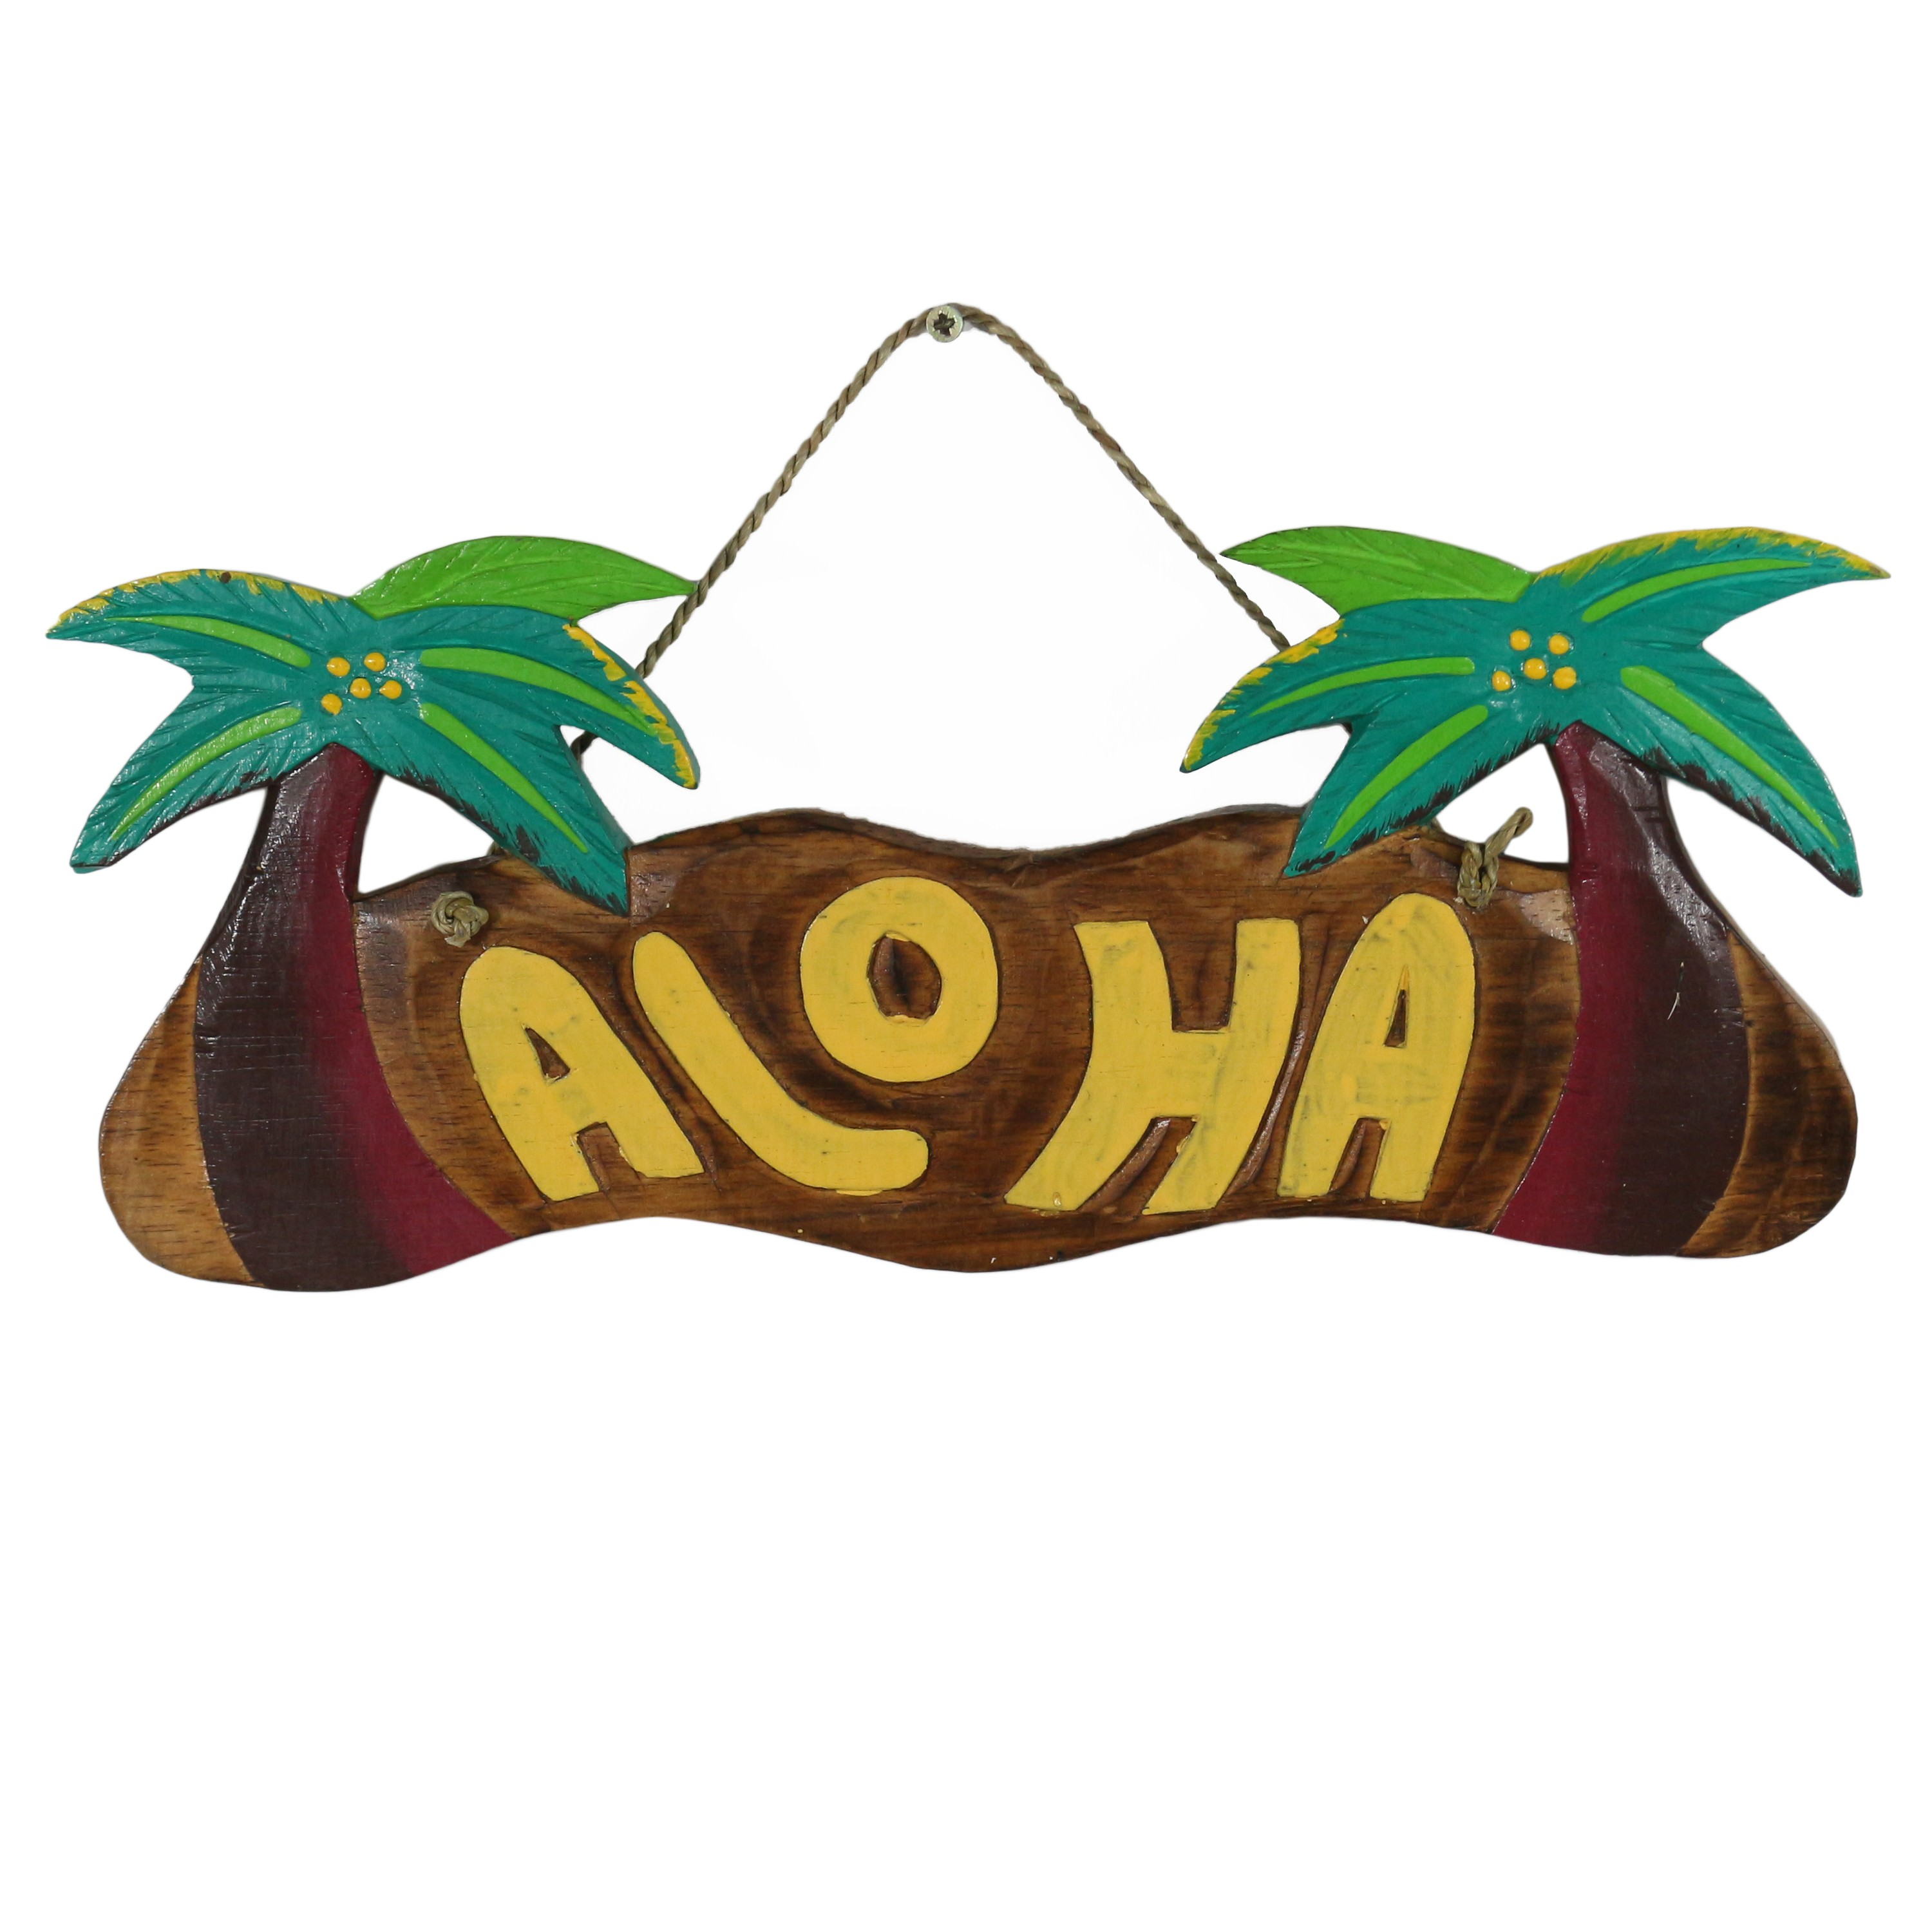 Aloha t rschild wandschild deko holzschild s dsee hawaii for Mottoparty deko